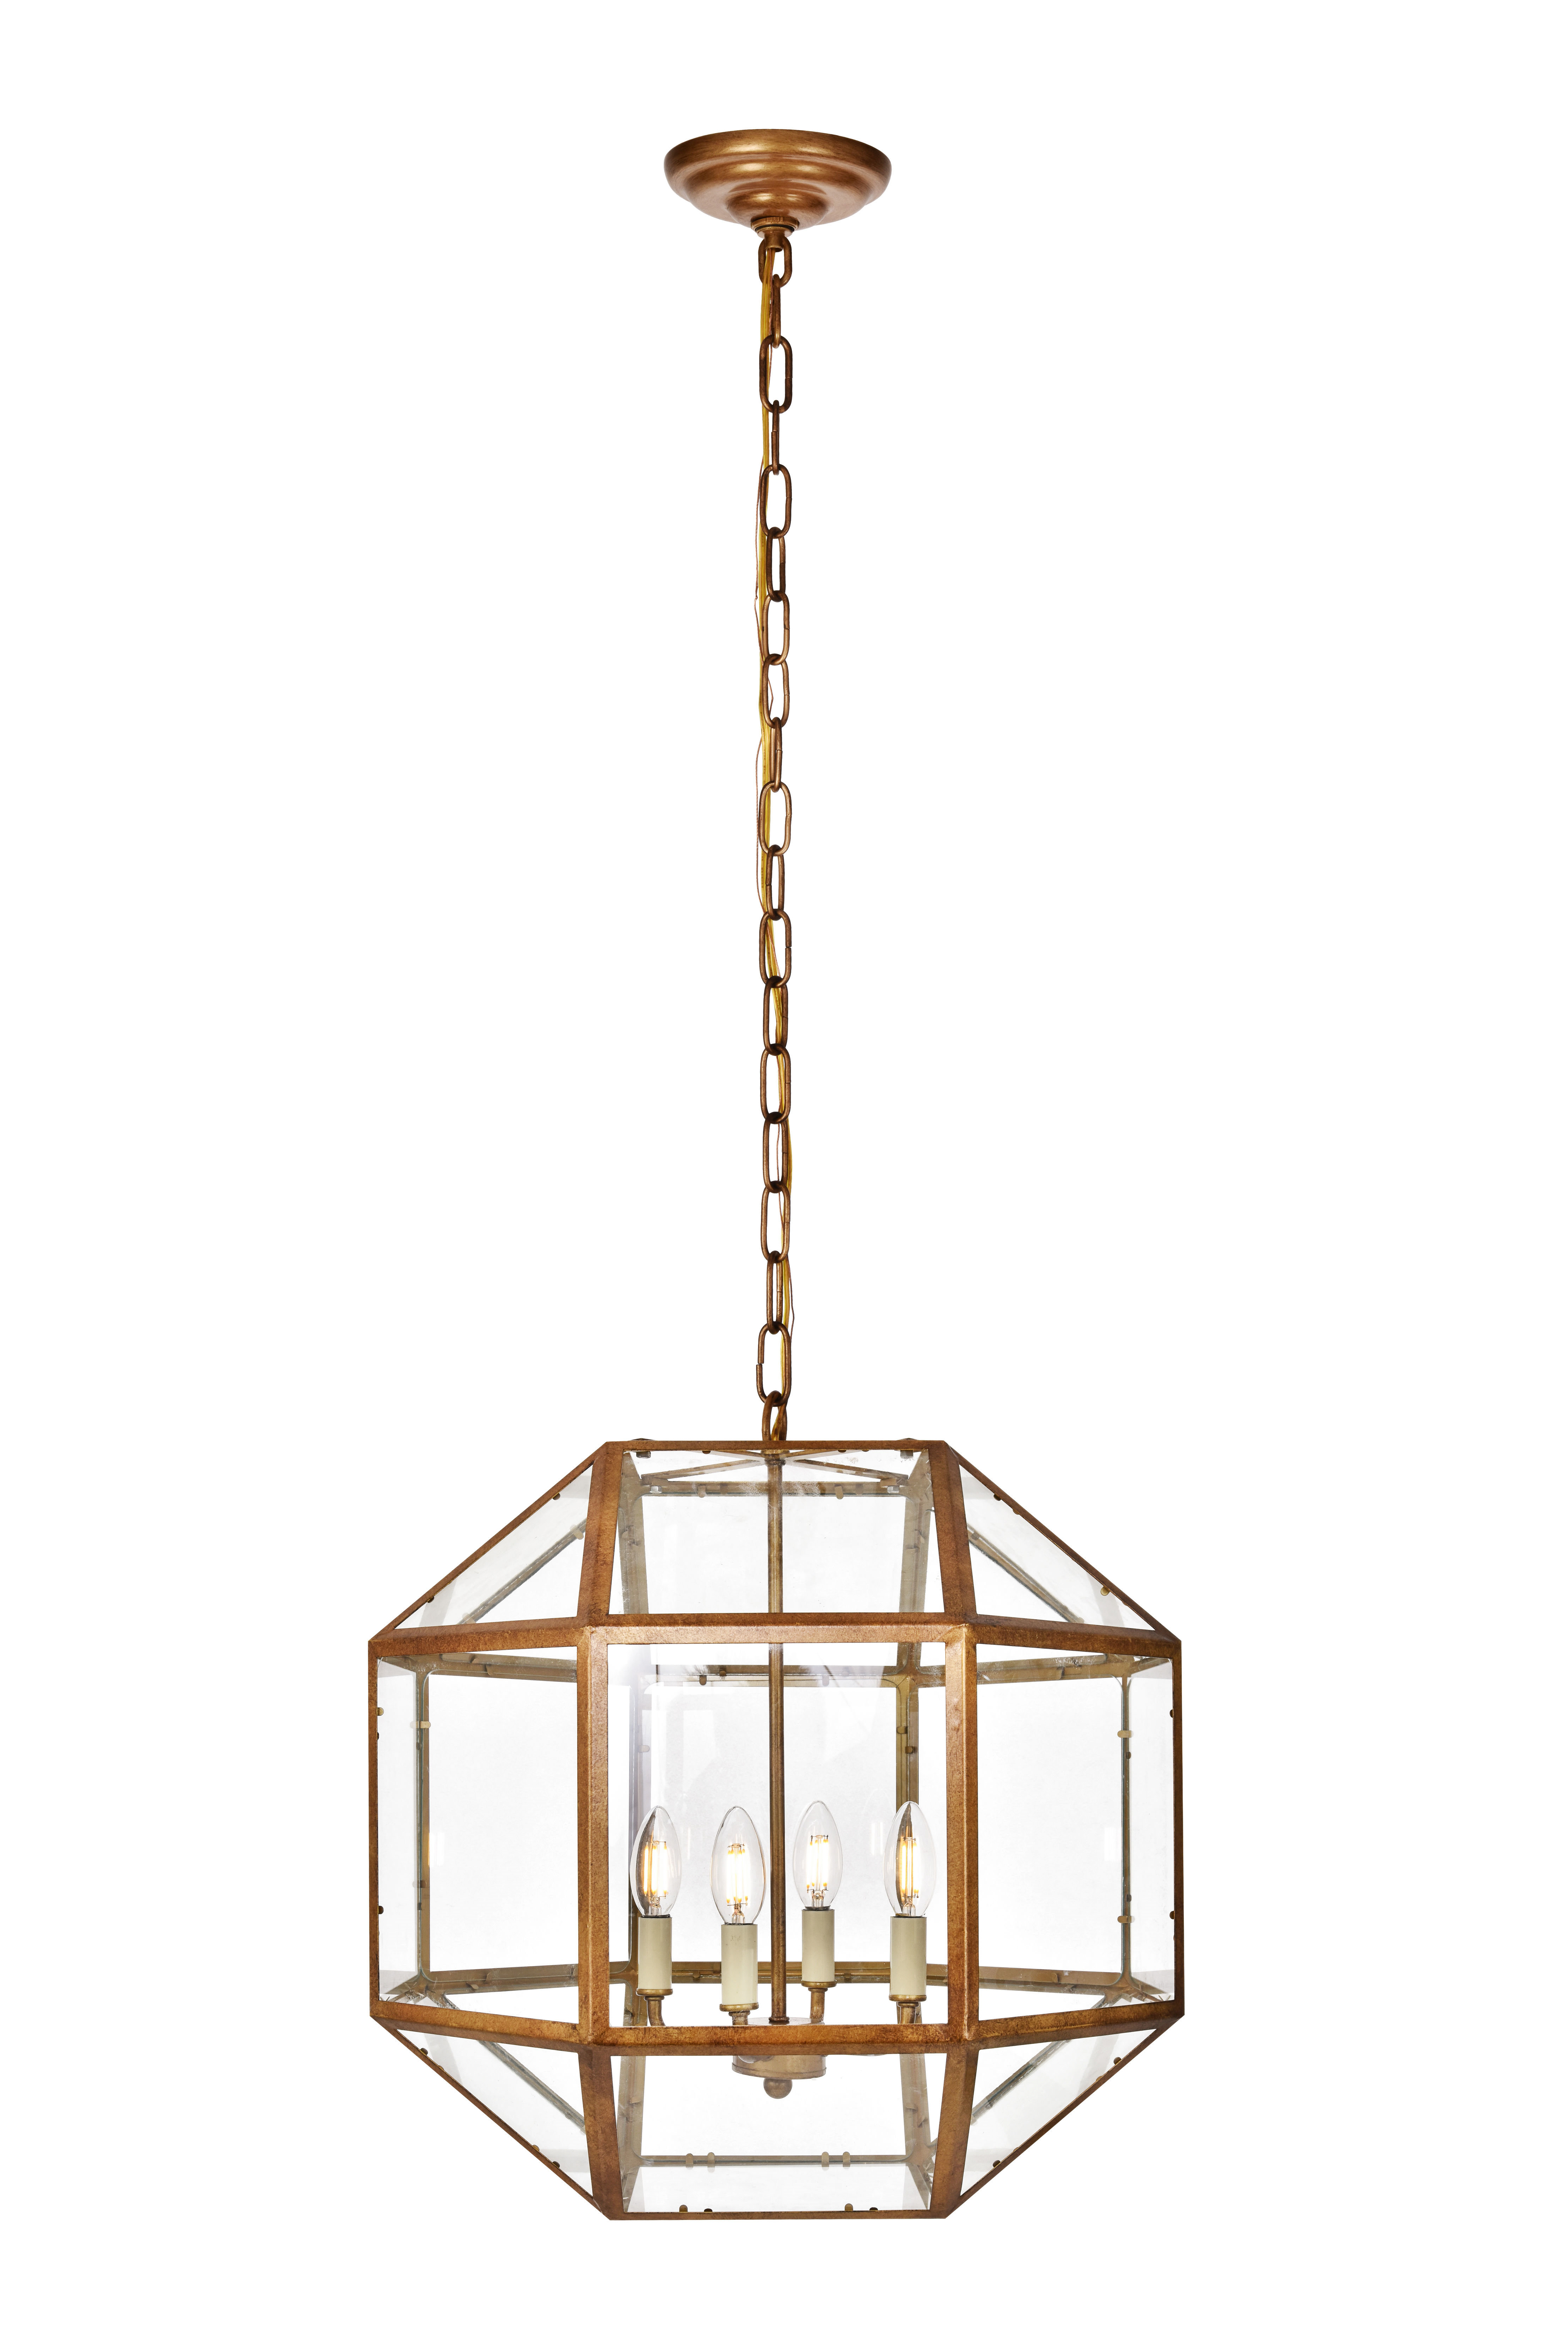 Ivy Bronx Burkeville 4 Light Geometric Chandelier Throughout Most Recent Reidar 4 Light Geometric Chandeliers (Gallery 12 of 20)